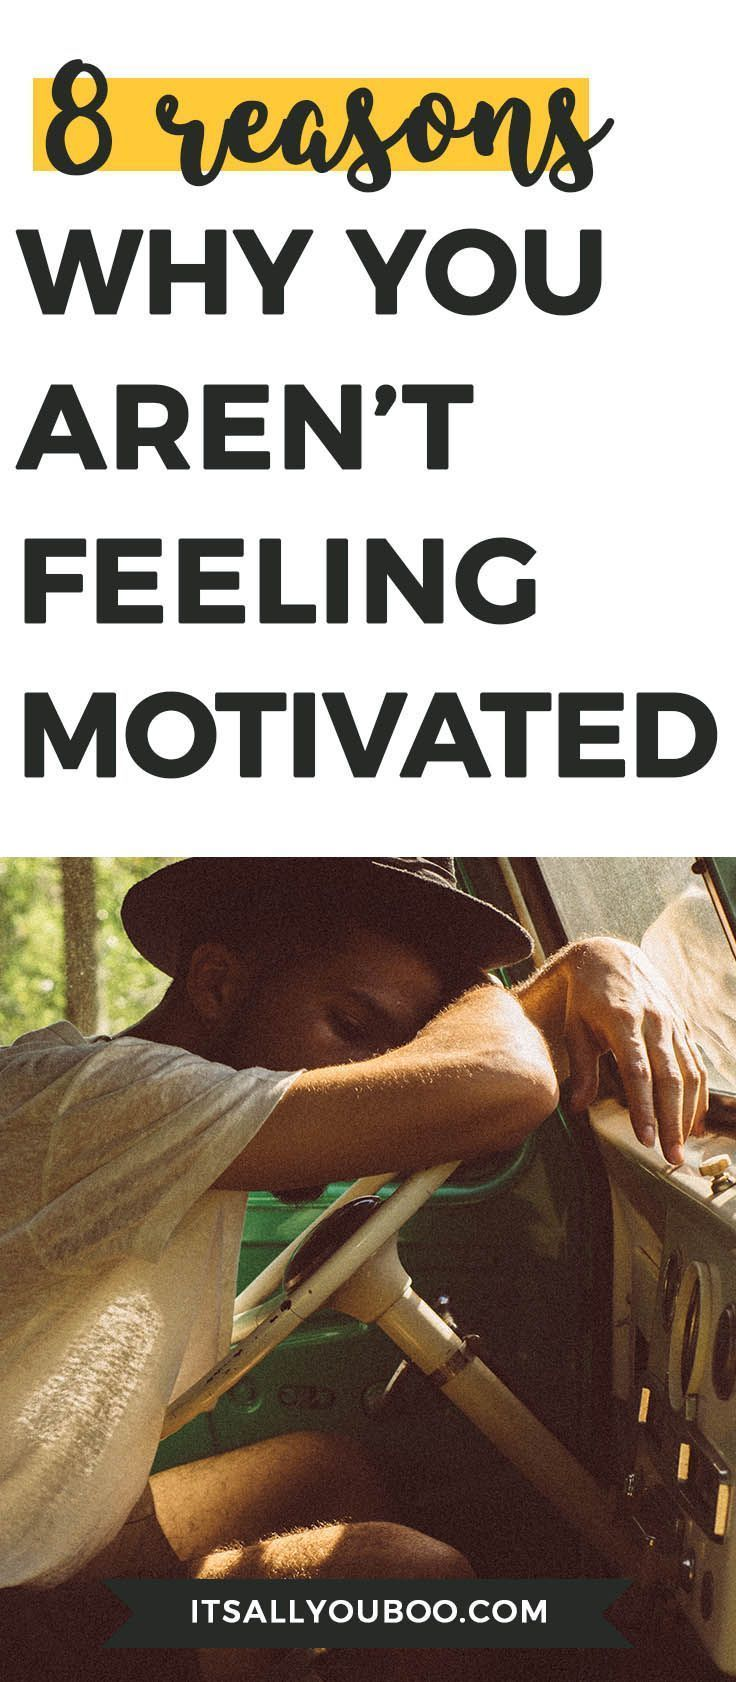 Have you lost your motivation? Are you struggling to get anything done? Let's figure out why. Here are 8 motivation killers you need to know about + how to fix it. It's time to get motivated.